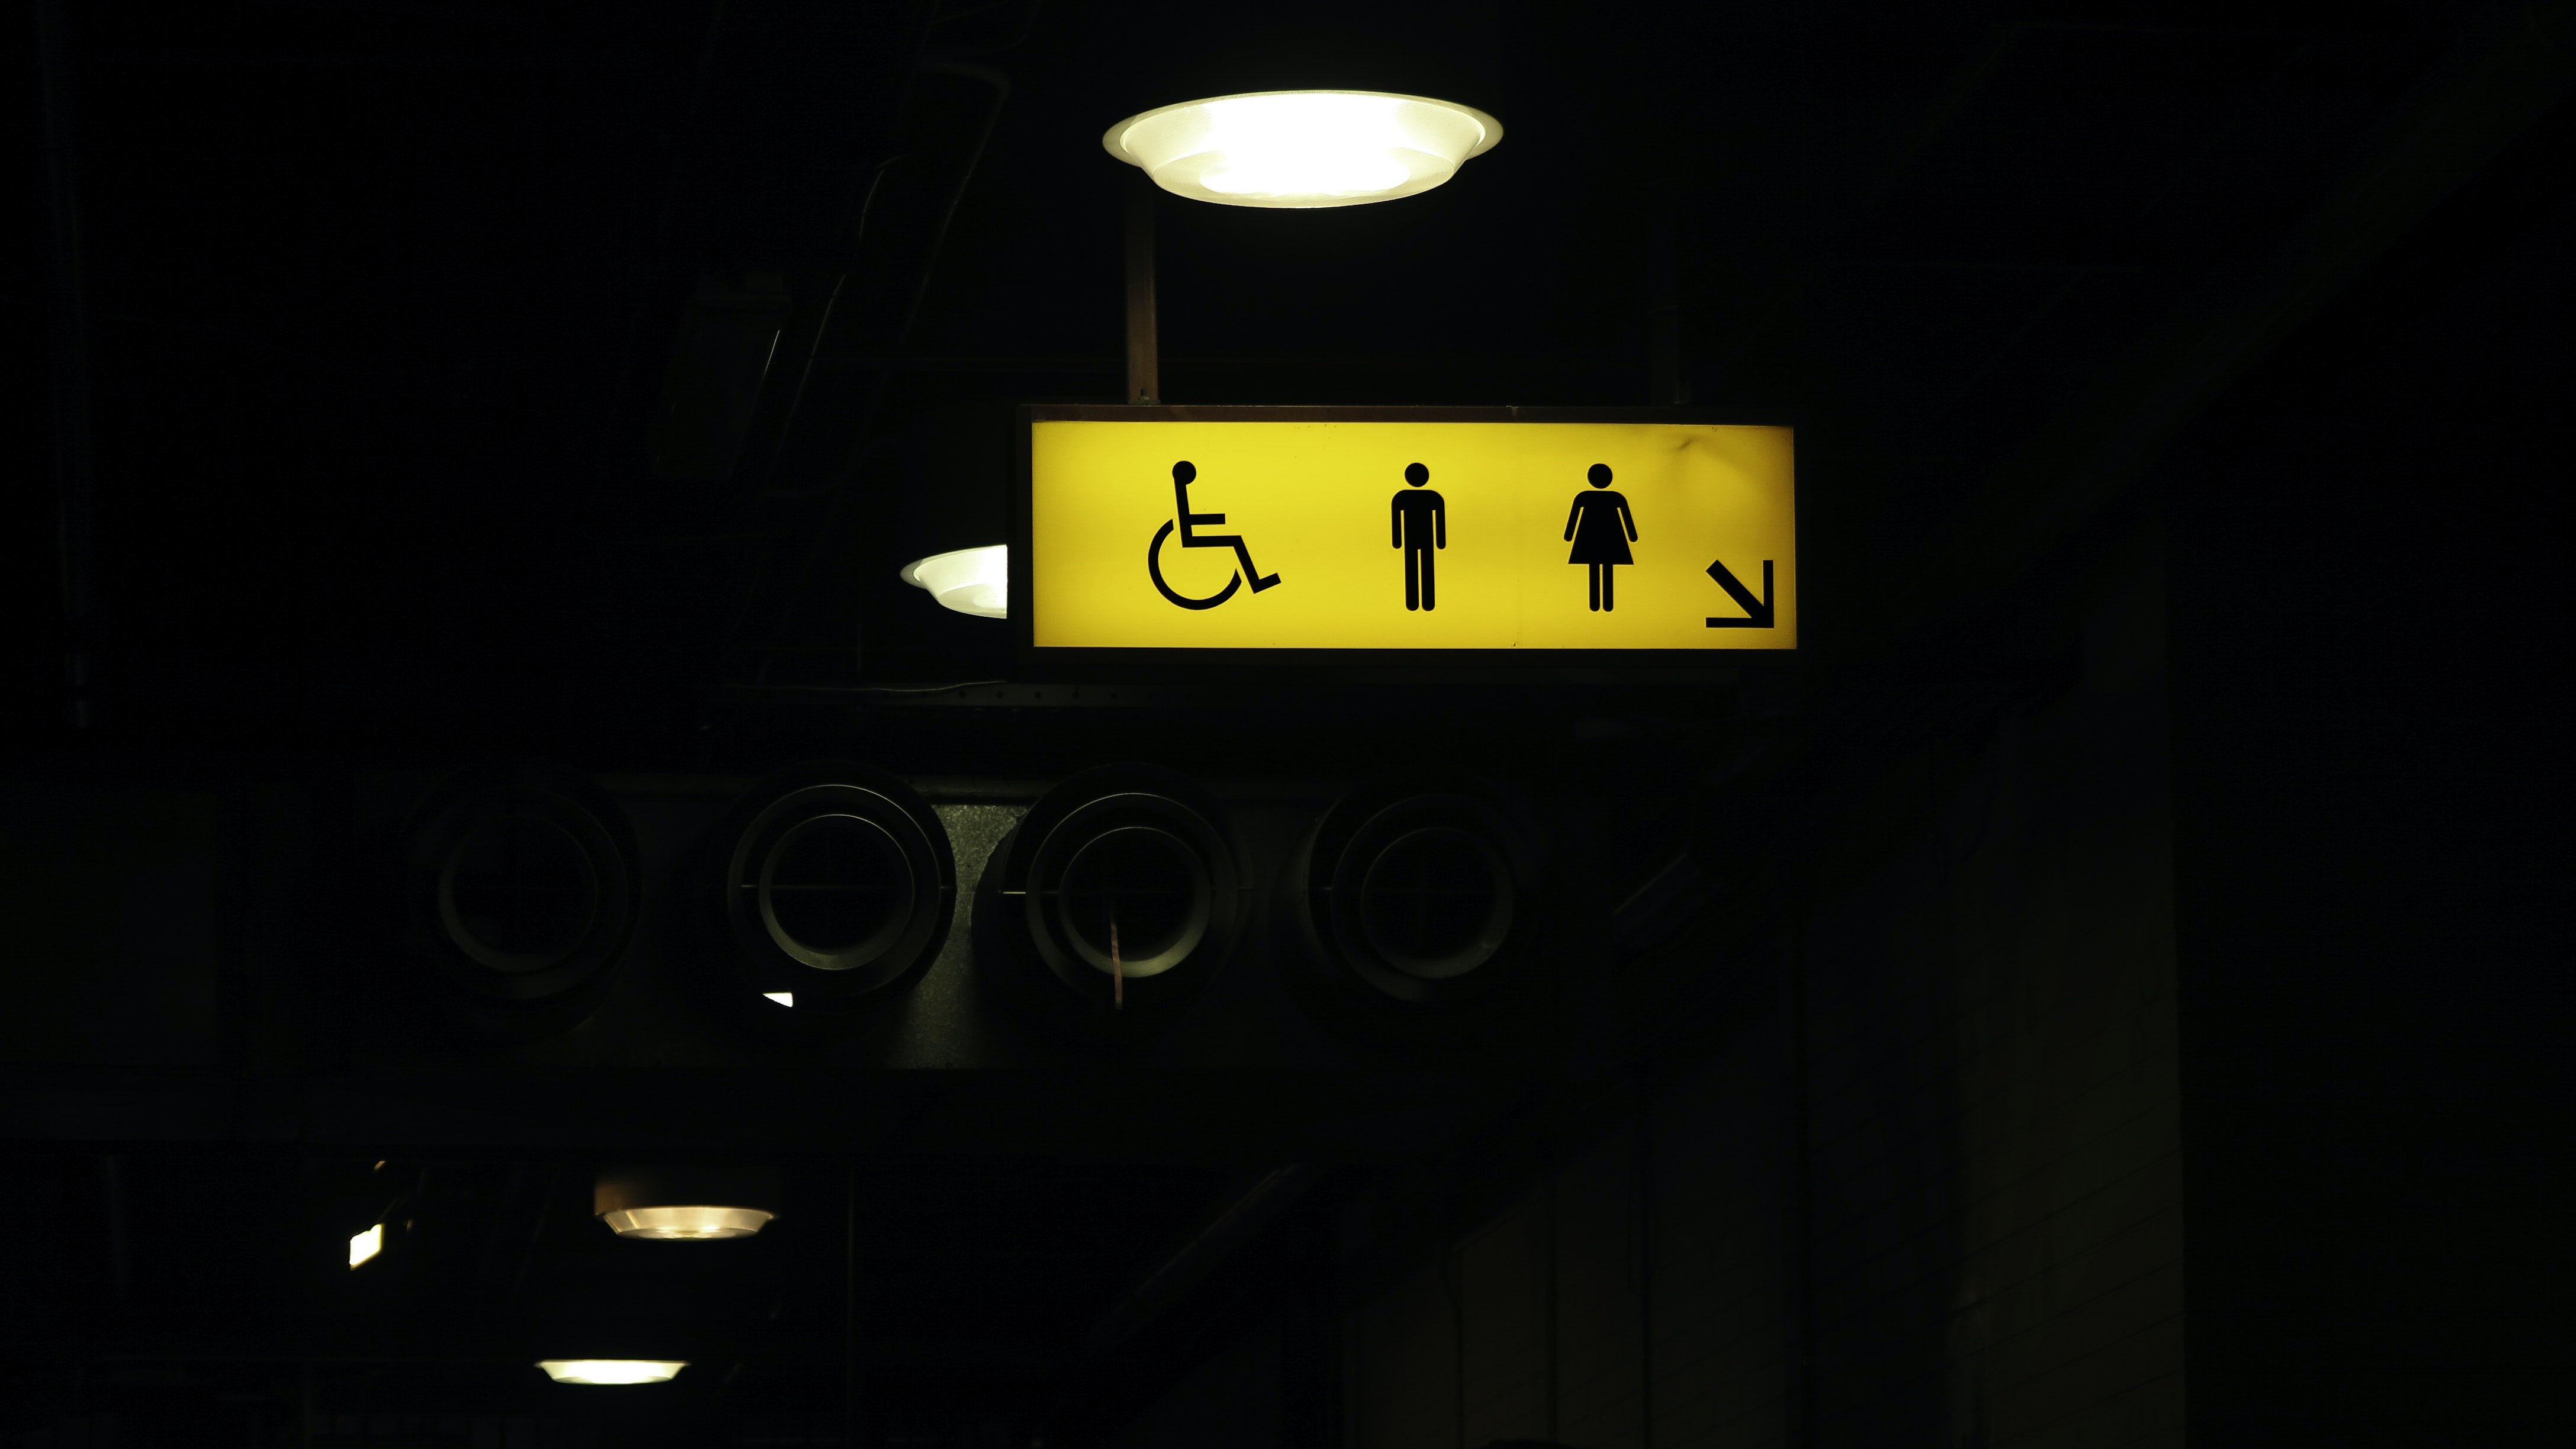 A bright yellow toilet sign in a dark room